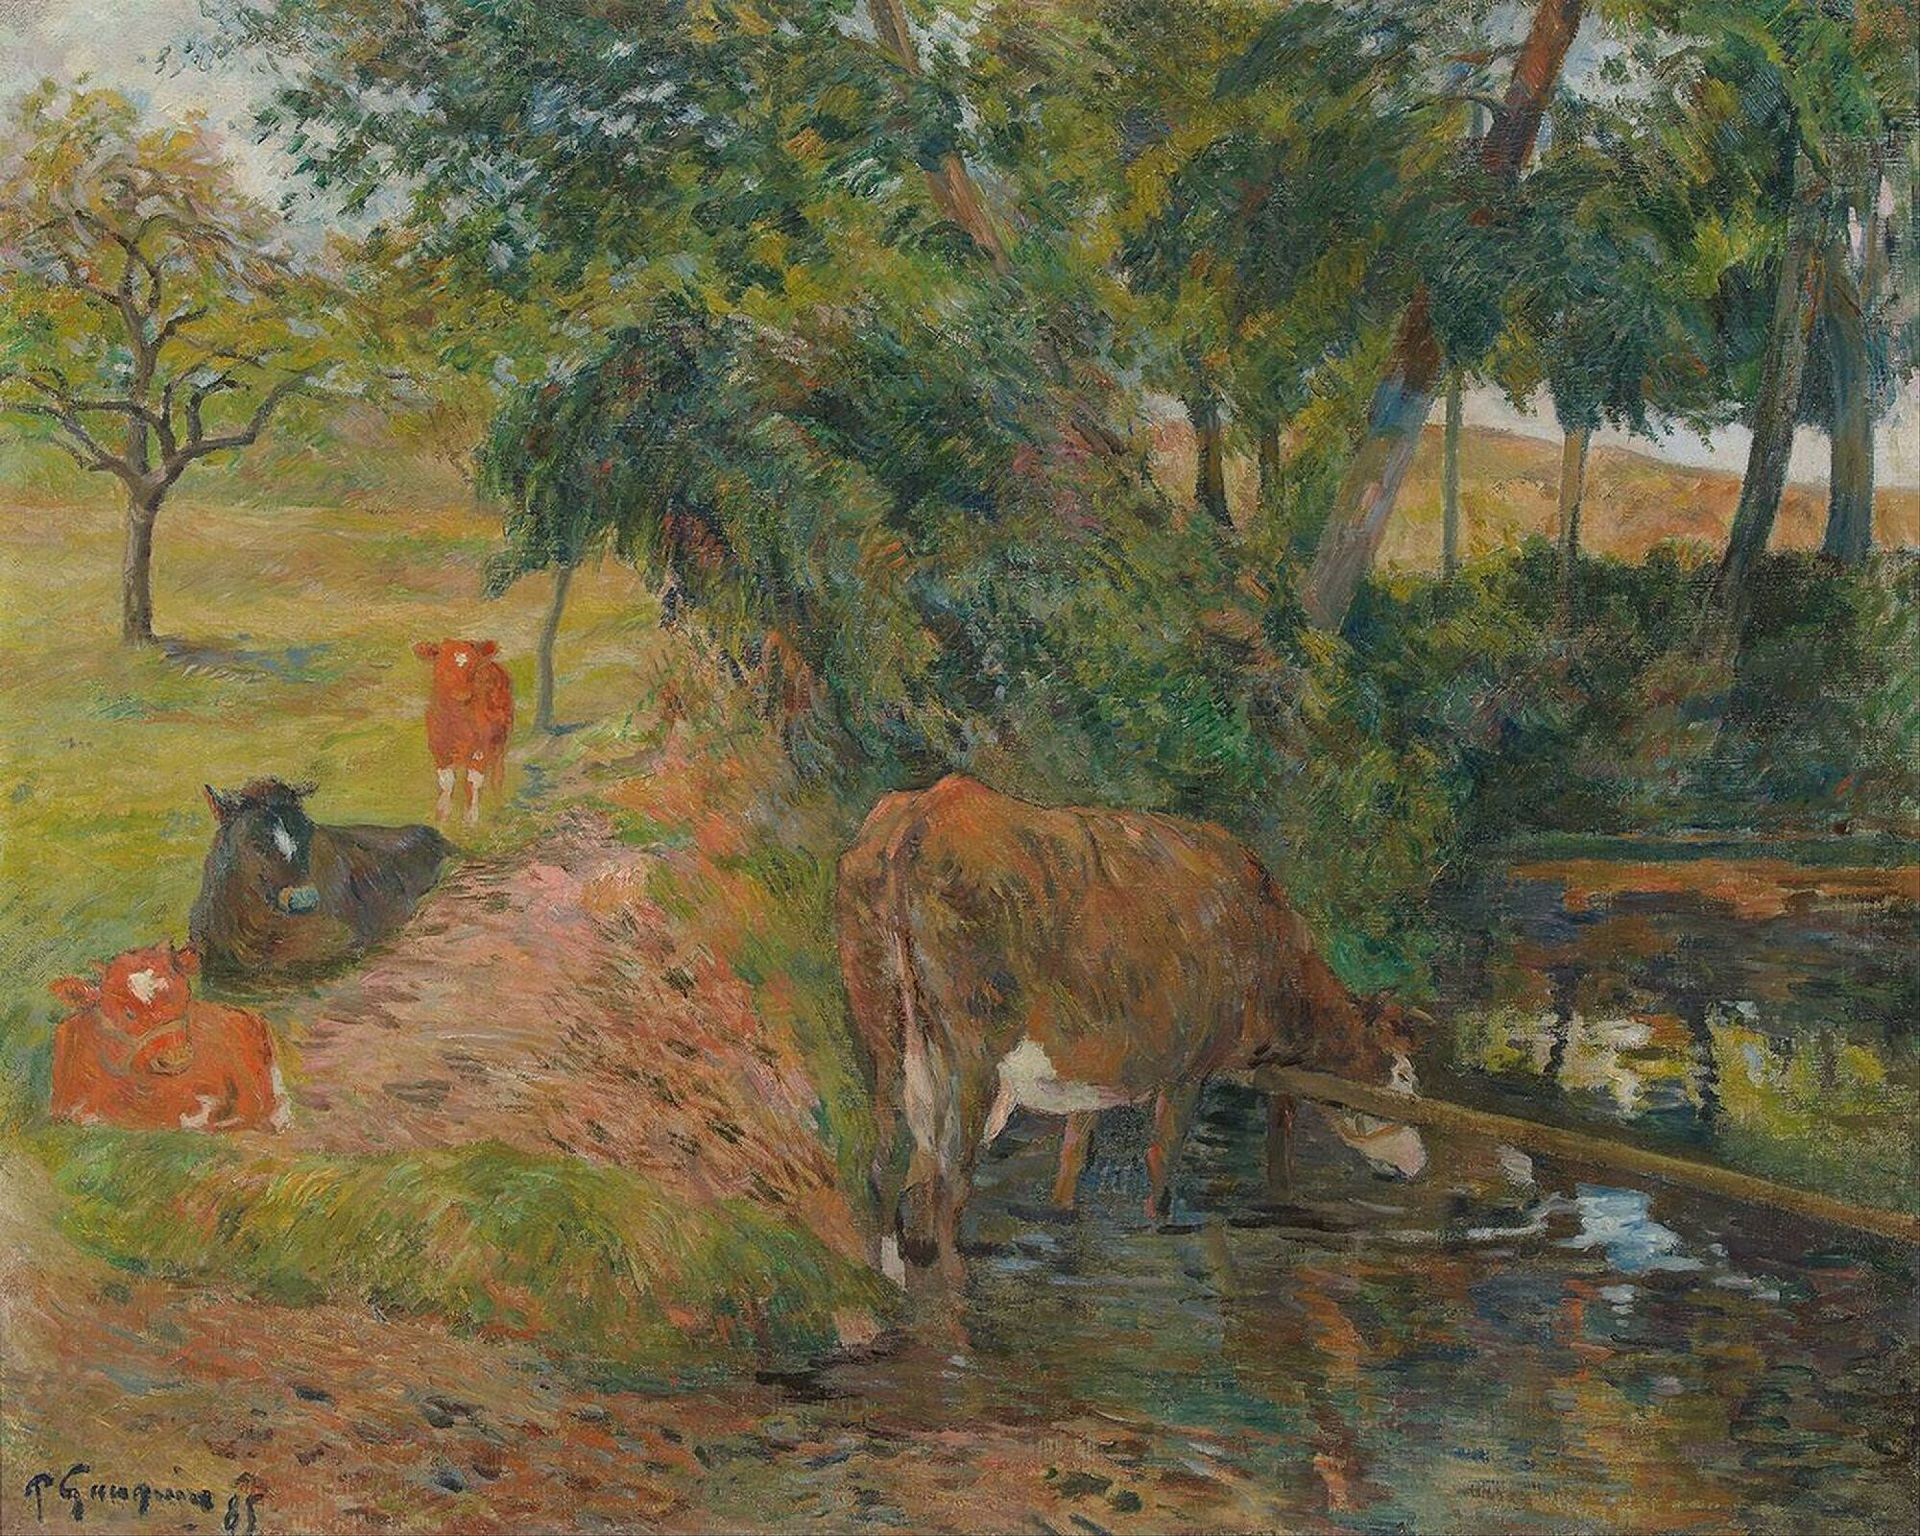 Paul Gauguin - Landscape with cows in an Orchard 1885